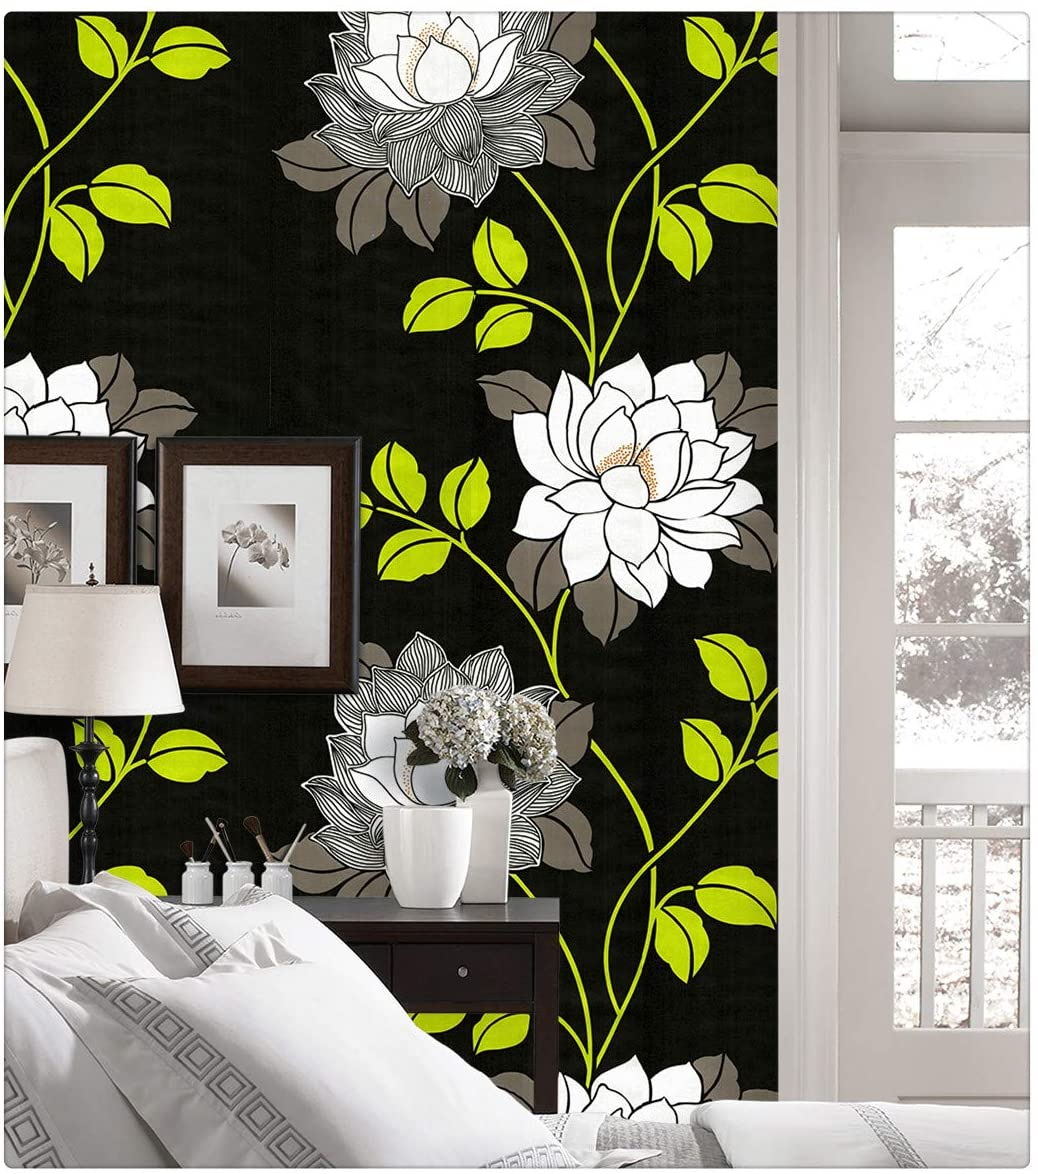 Dwin H1294 Peel and Stick Wallpaper Floral 17. 7'' x 118 inch Self Adhesive Paper for Bedroom Furniture-Easy to Clean,Durable, Waterproof Home